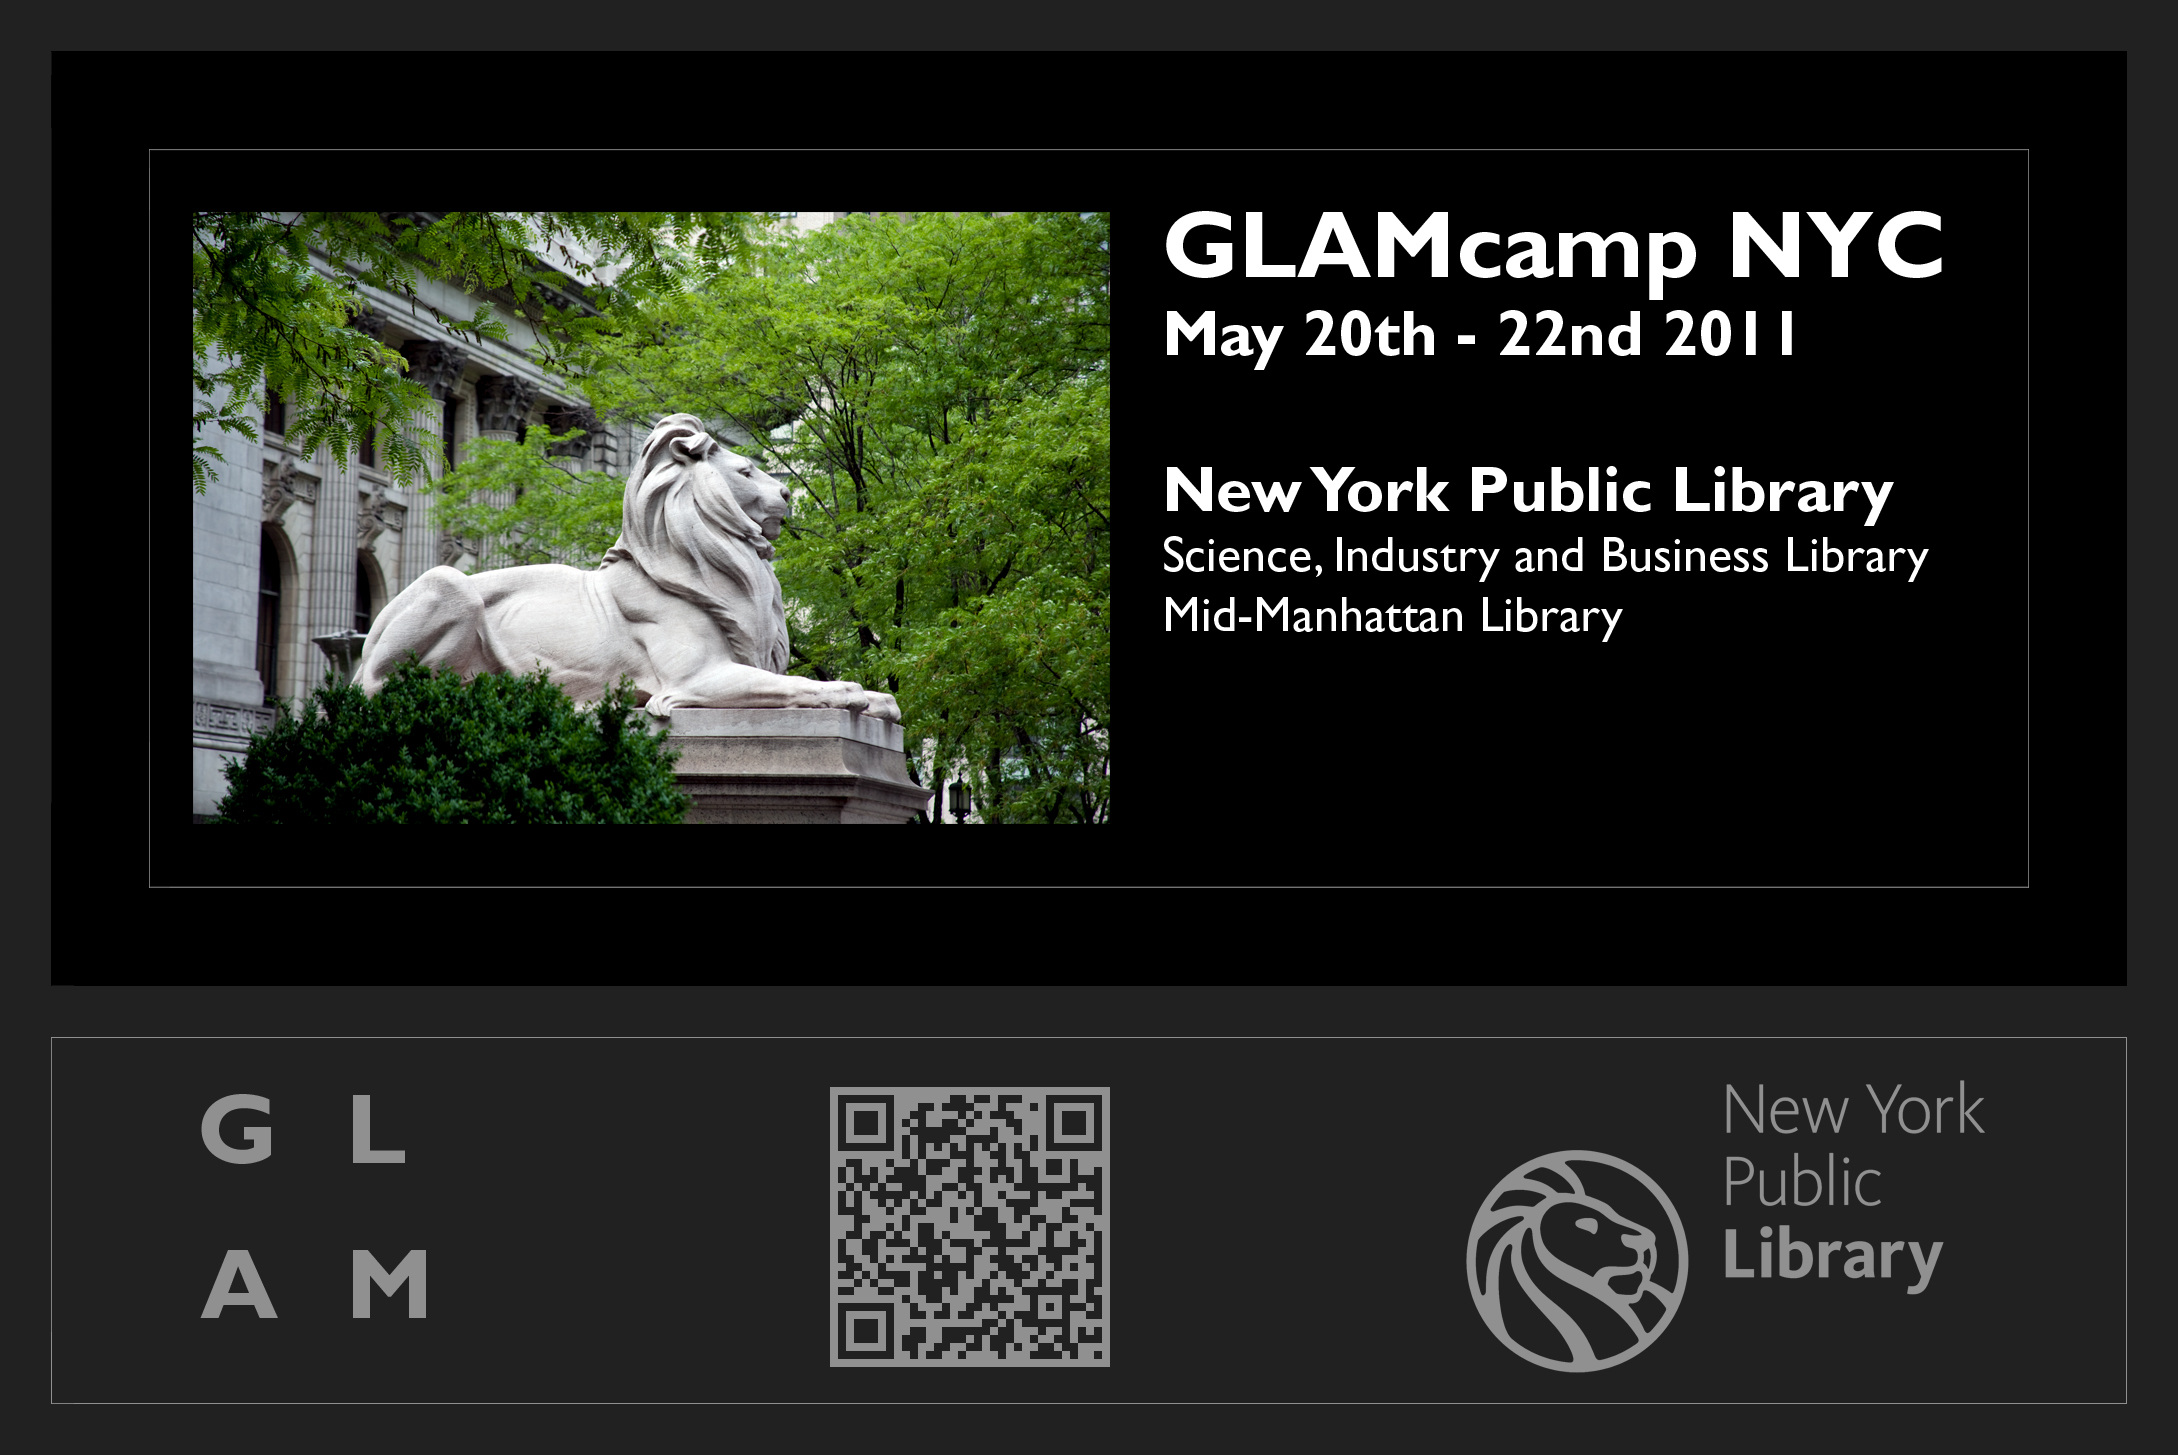 A wallpaper-type image advertising GLAMcamp NYC, made by Peter Weis.